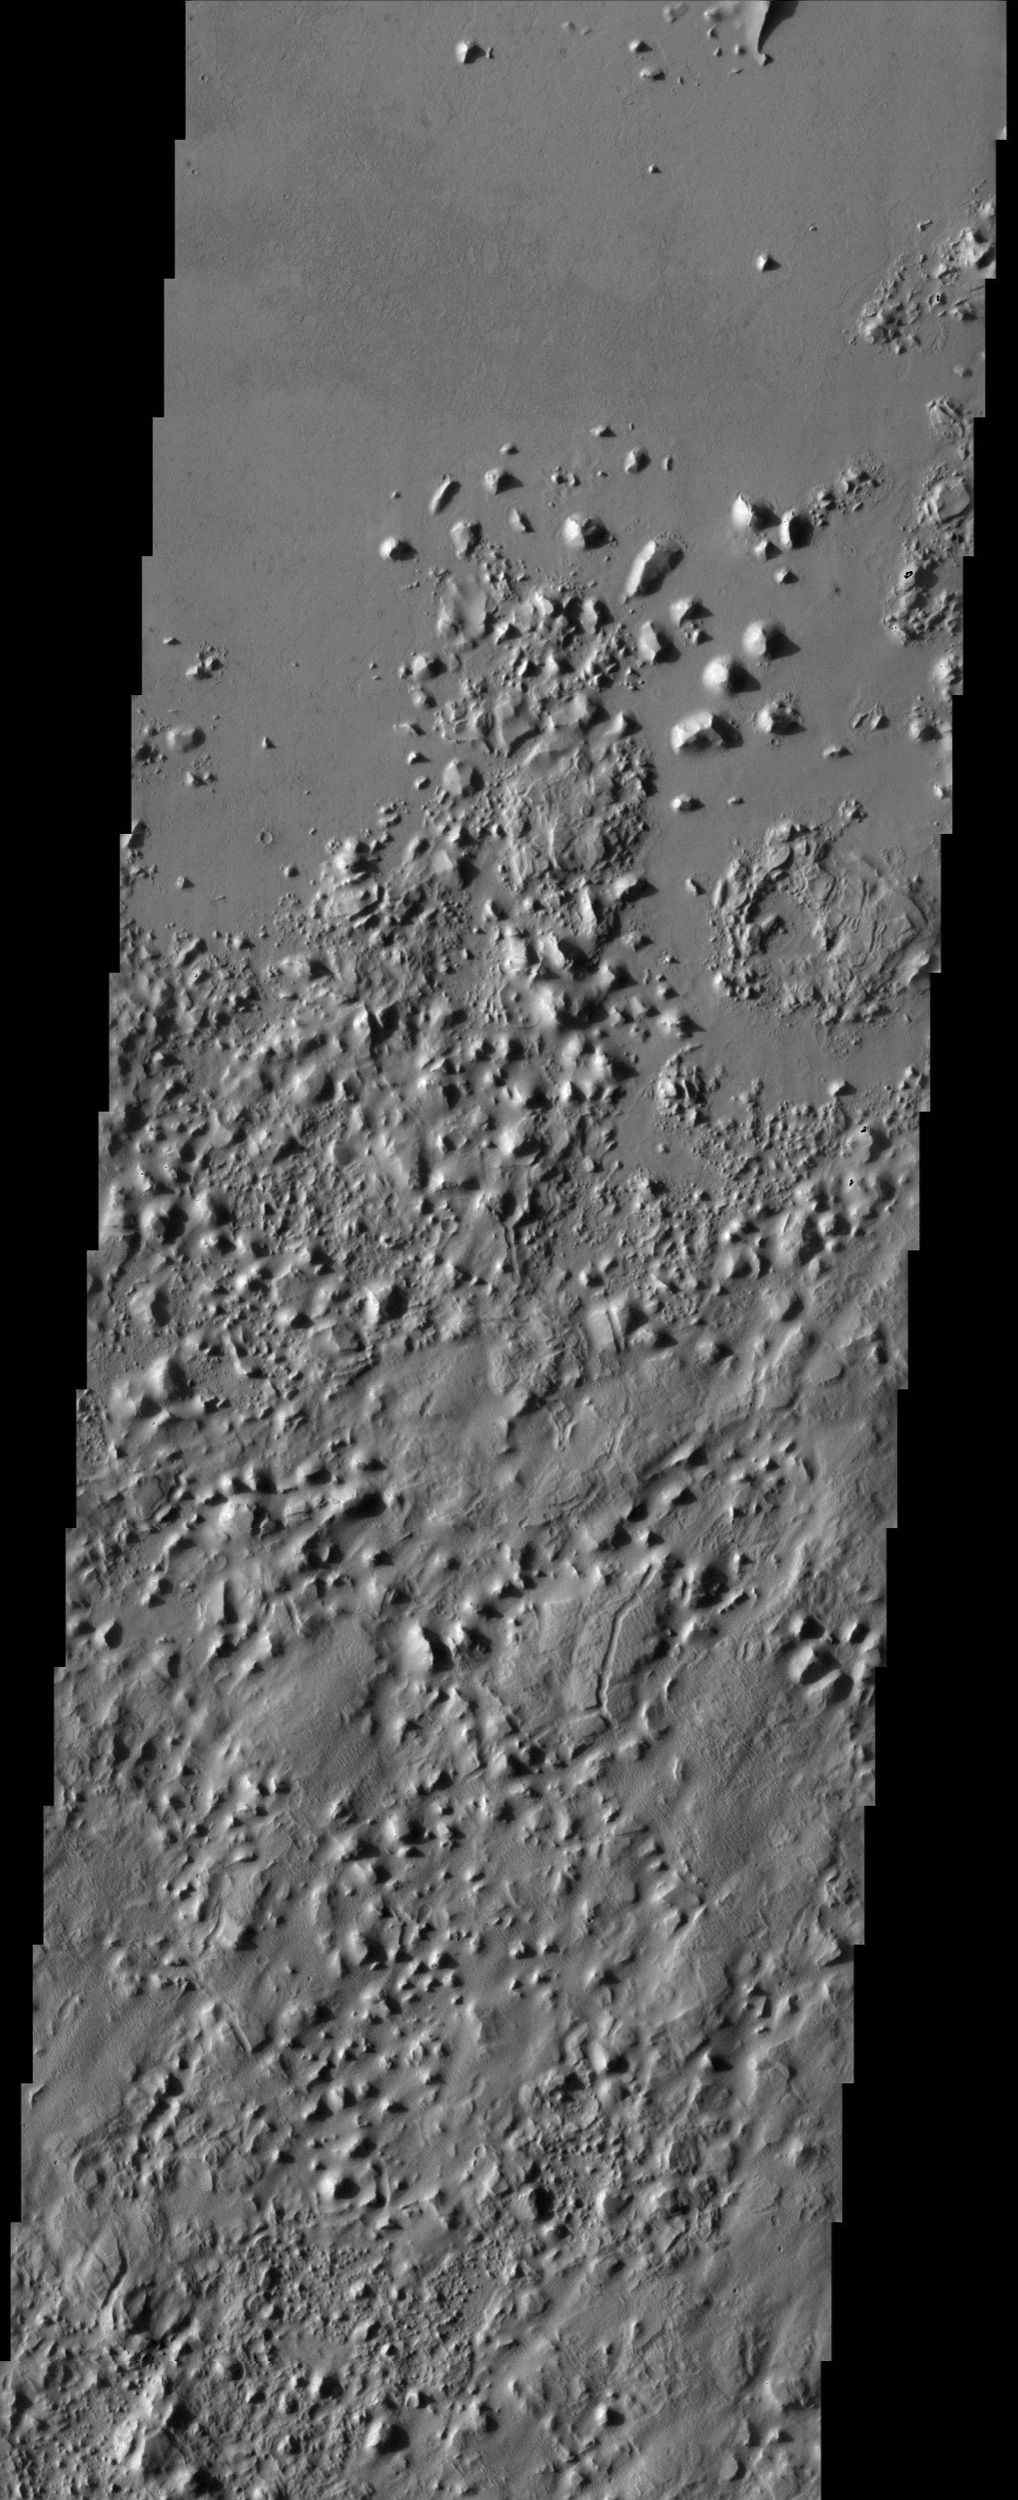 The smooth plains of Elysium embay the blocky broken up highlands of Aeolis in this image from NASA's Mars Odyssey spacecraft. The plains have been interpreted by researchers to be possibly mudflows or lava flows.